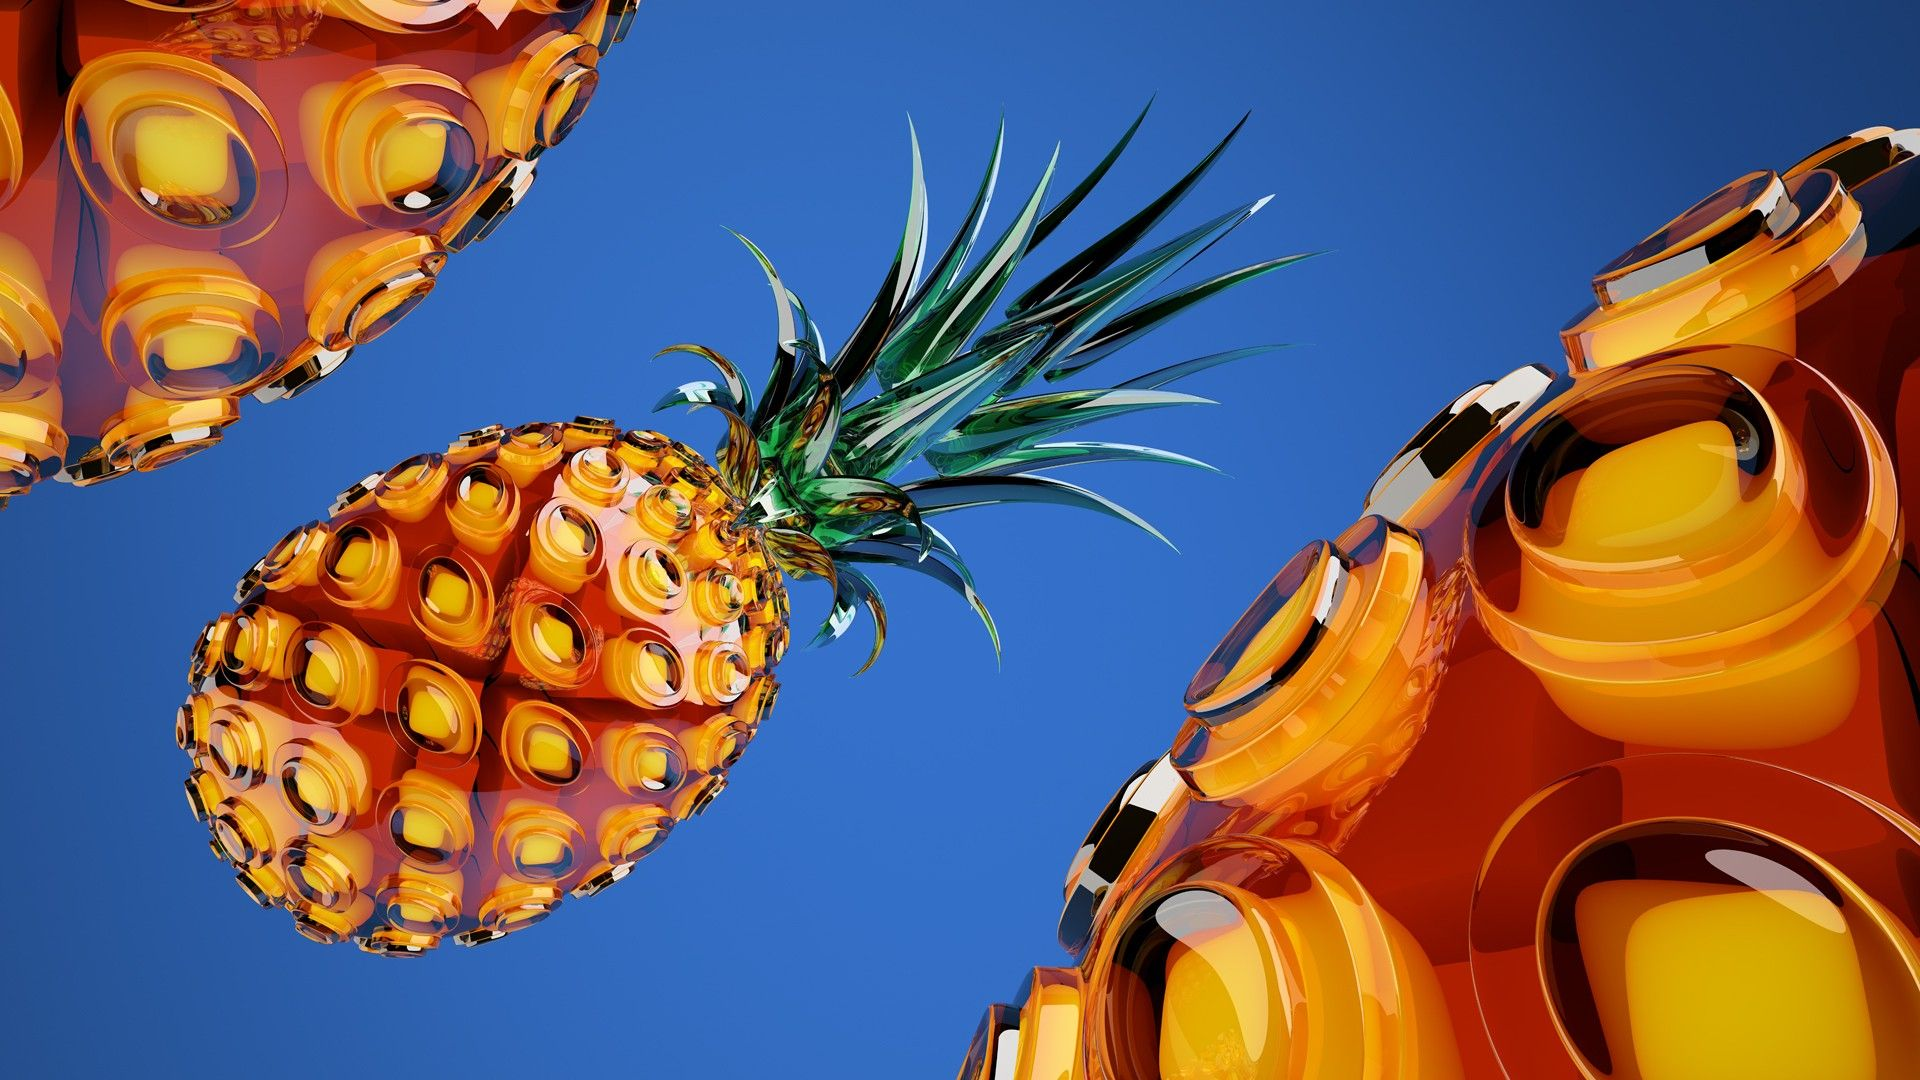 Stunning Pineapple HD Wallpaper Free Download 3DHD